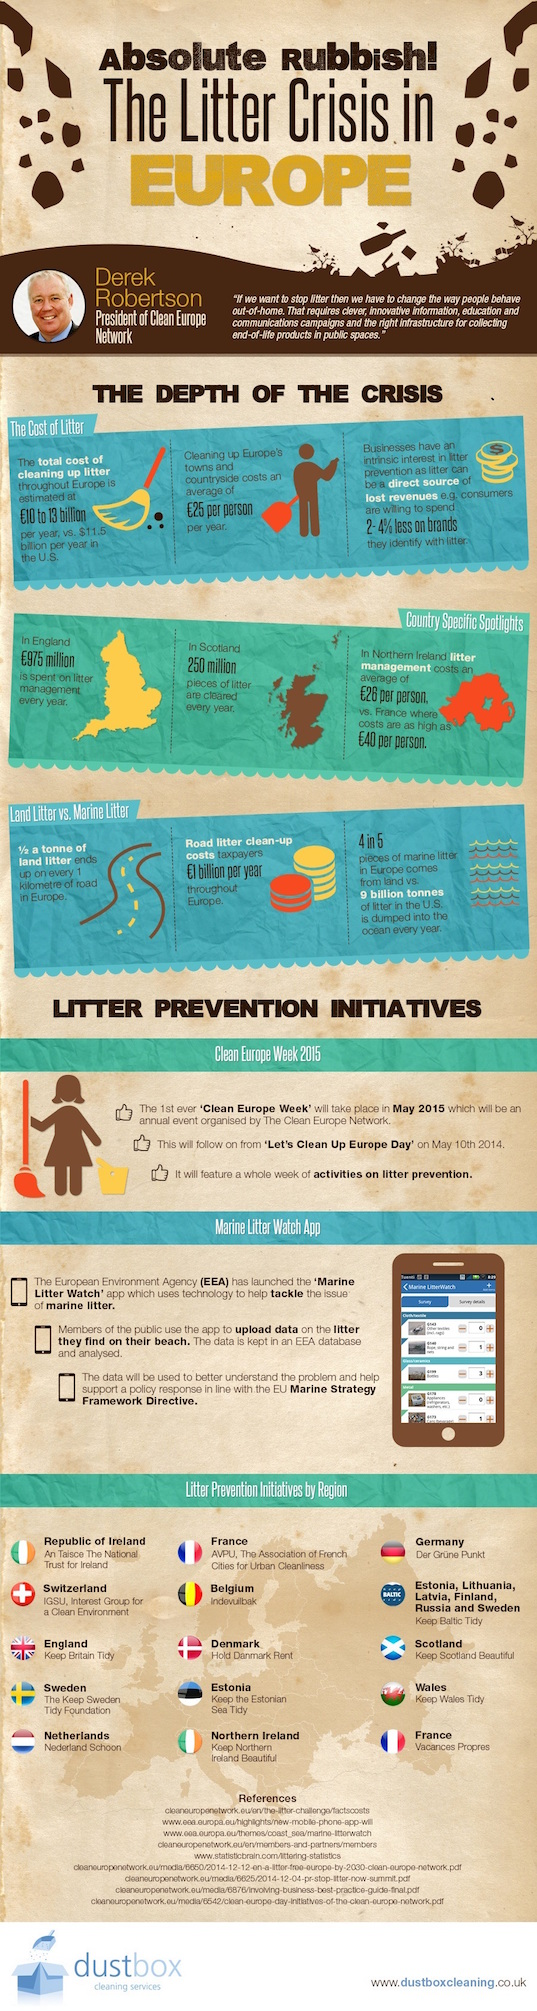 infographic, Clean Europe Network, Absolute rubbish, reader submitted content, Dustbox cleaning services, trash in europe, litter crisis, Clean Europe Week